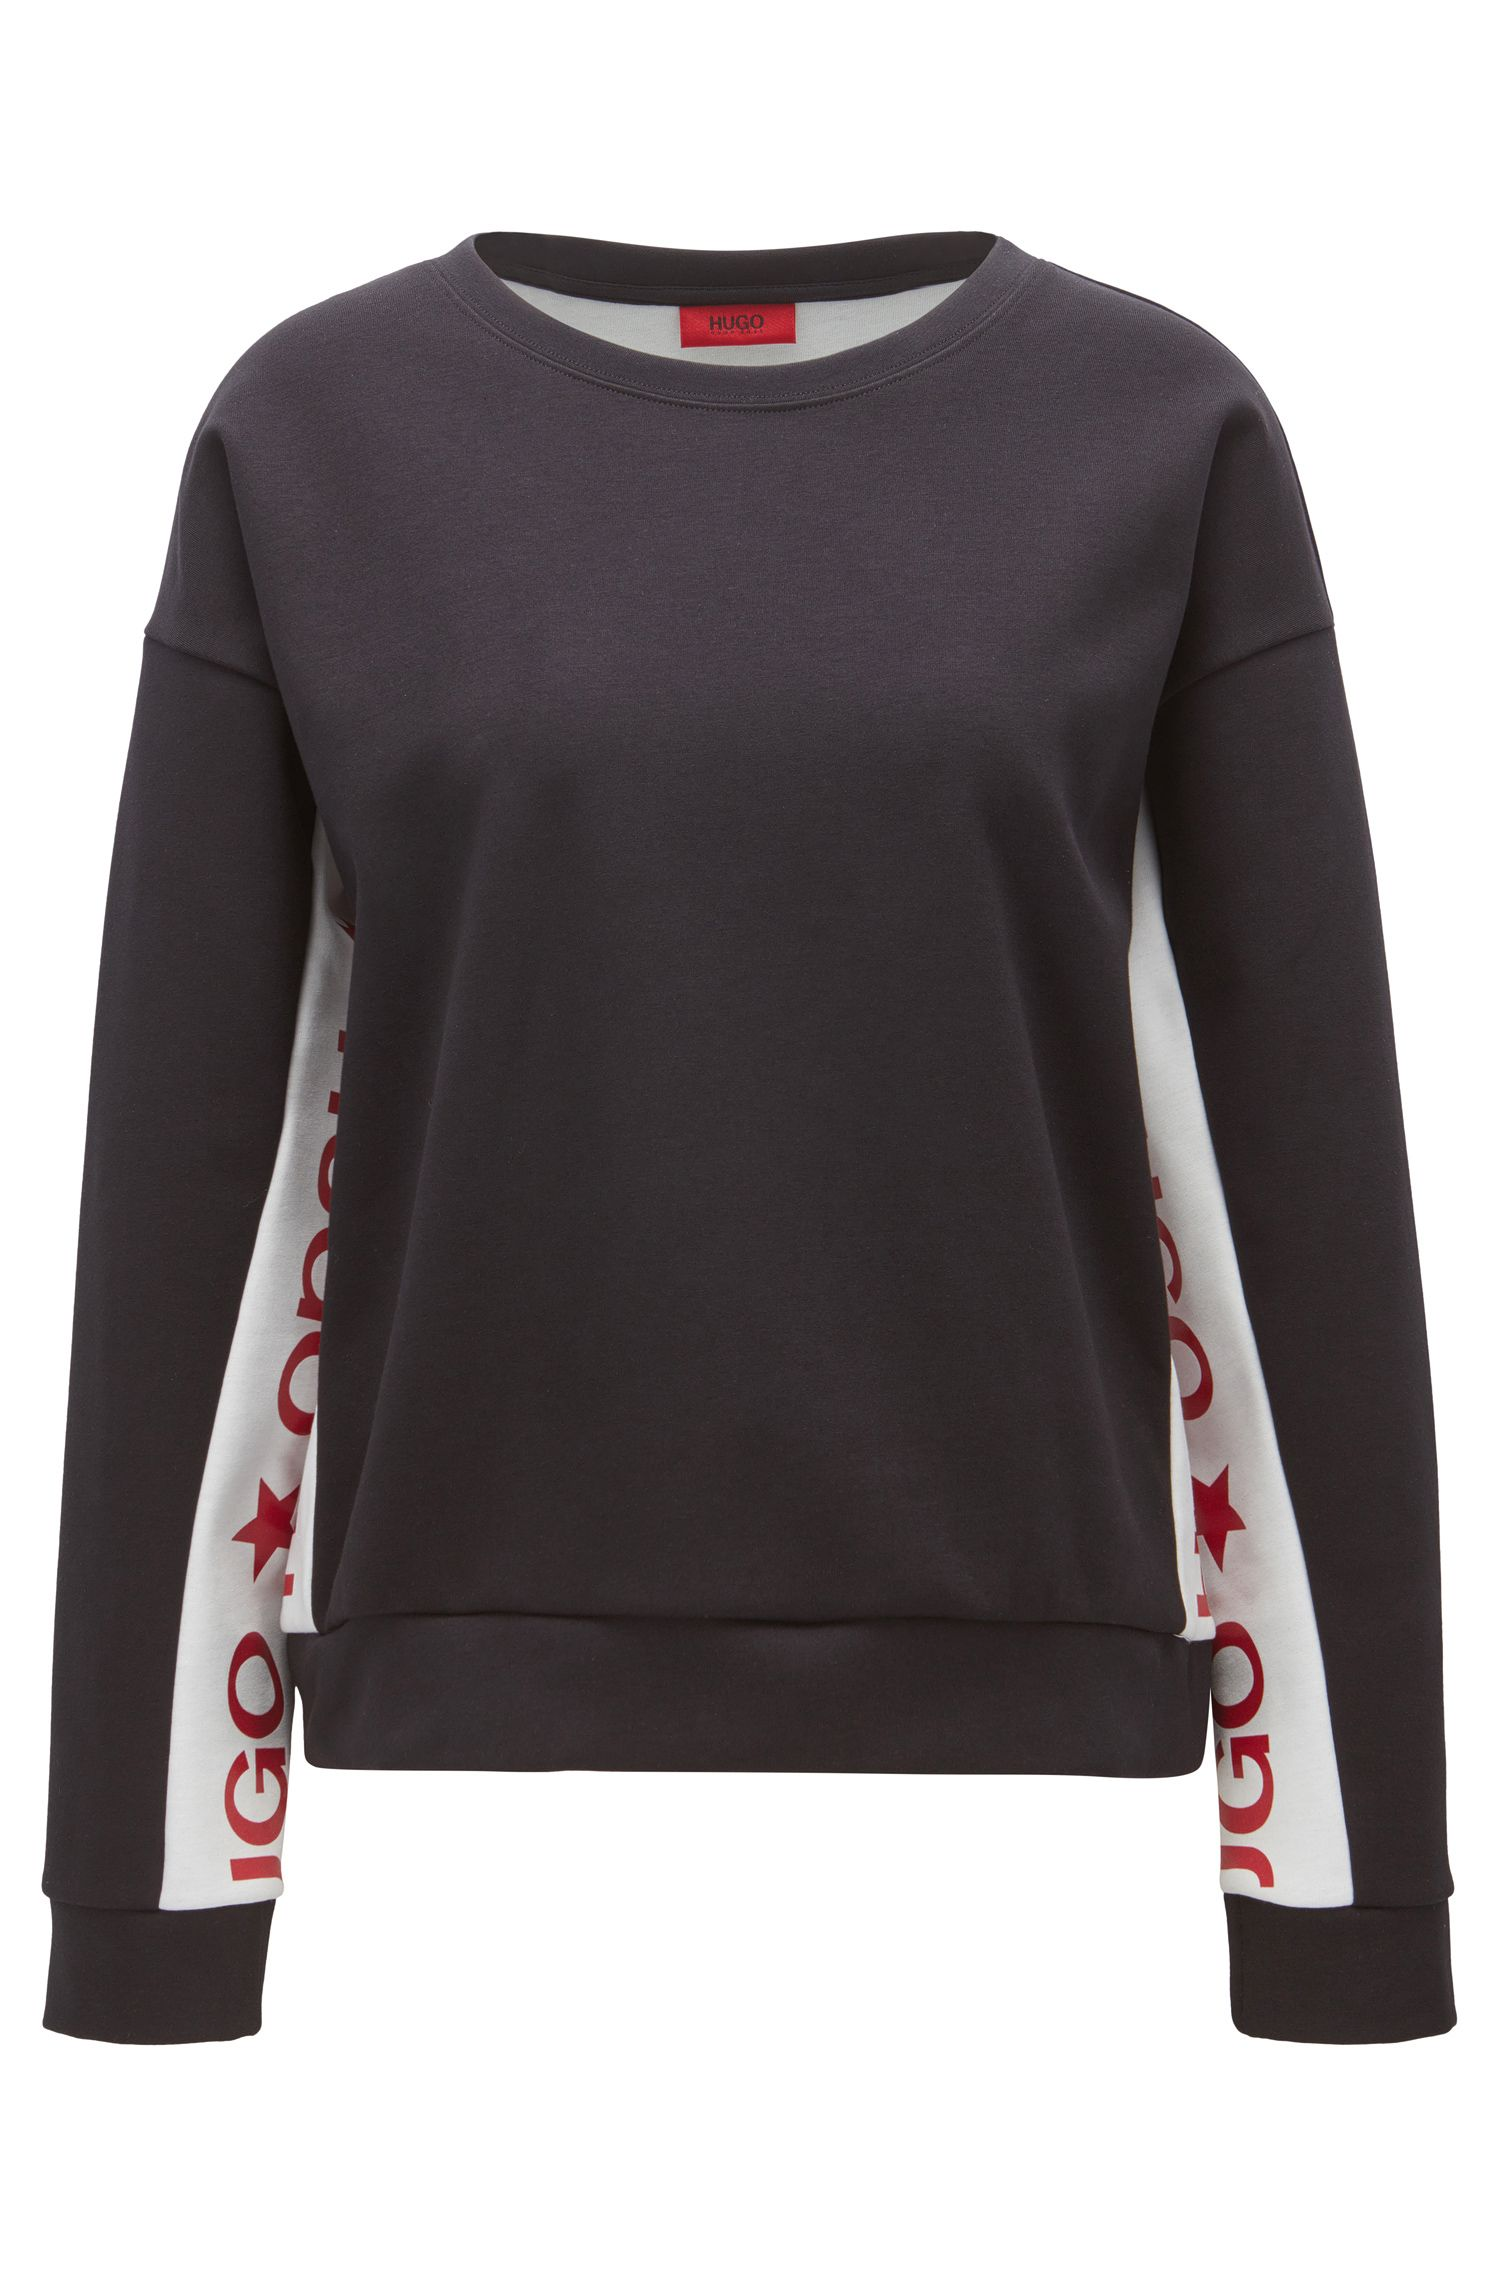 Cotton-blend sweater with contrast inserts